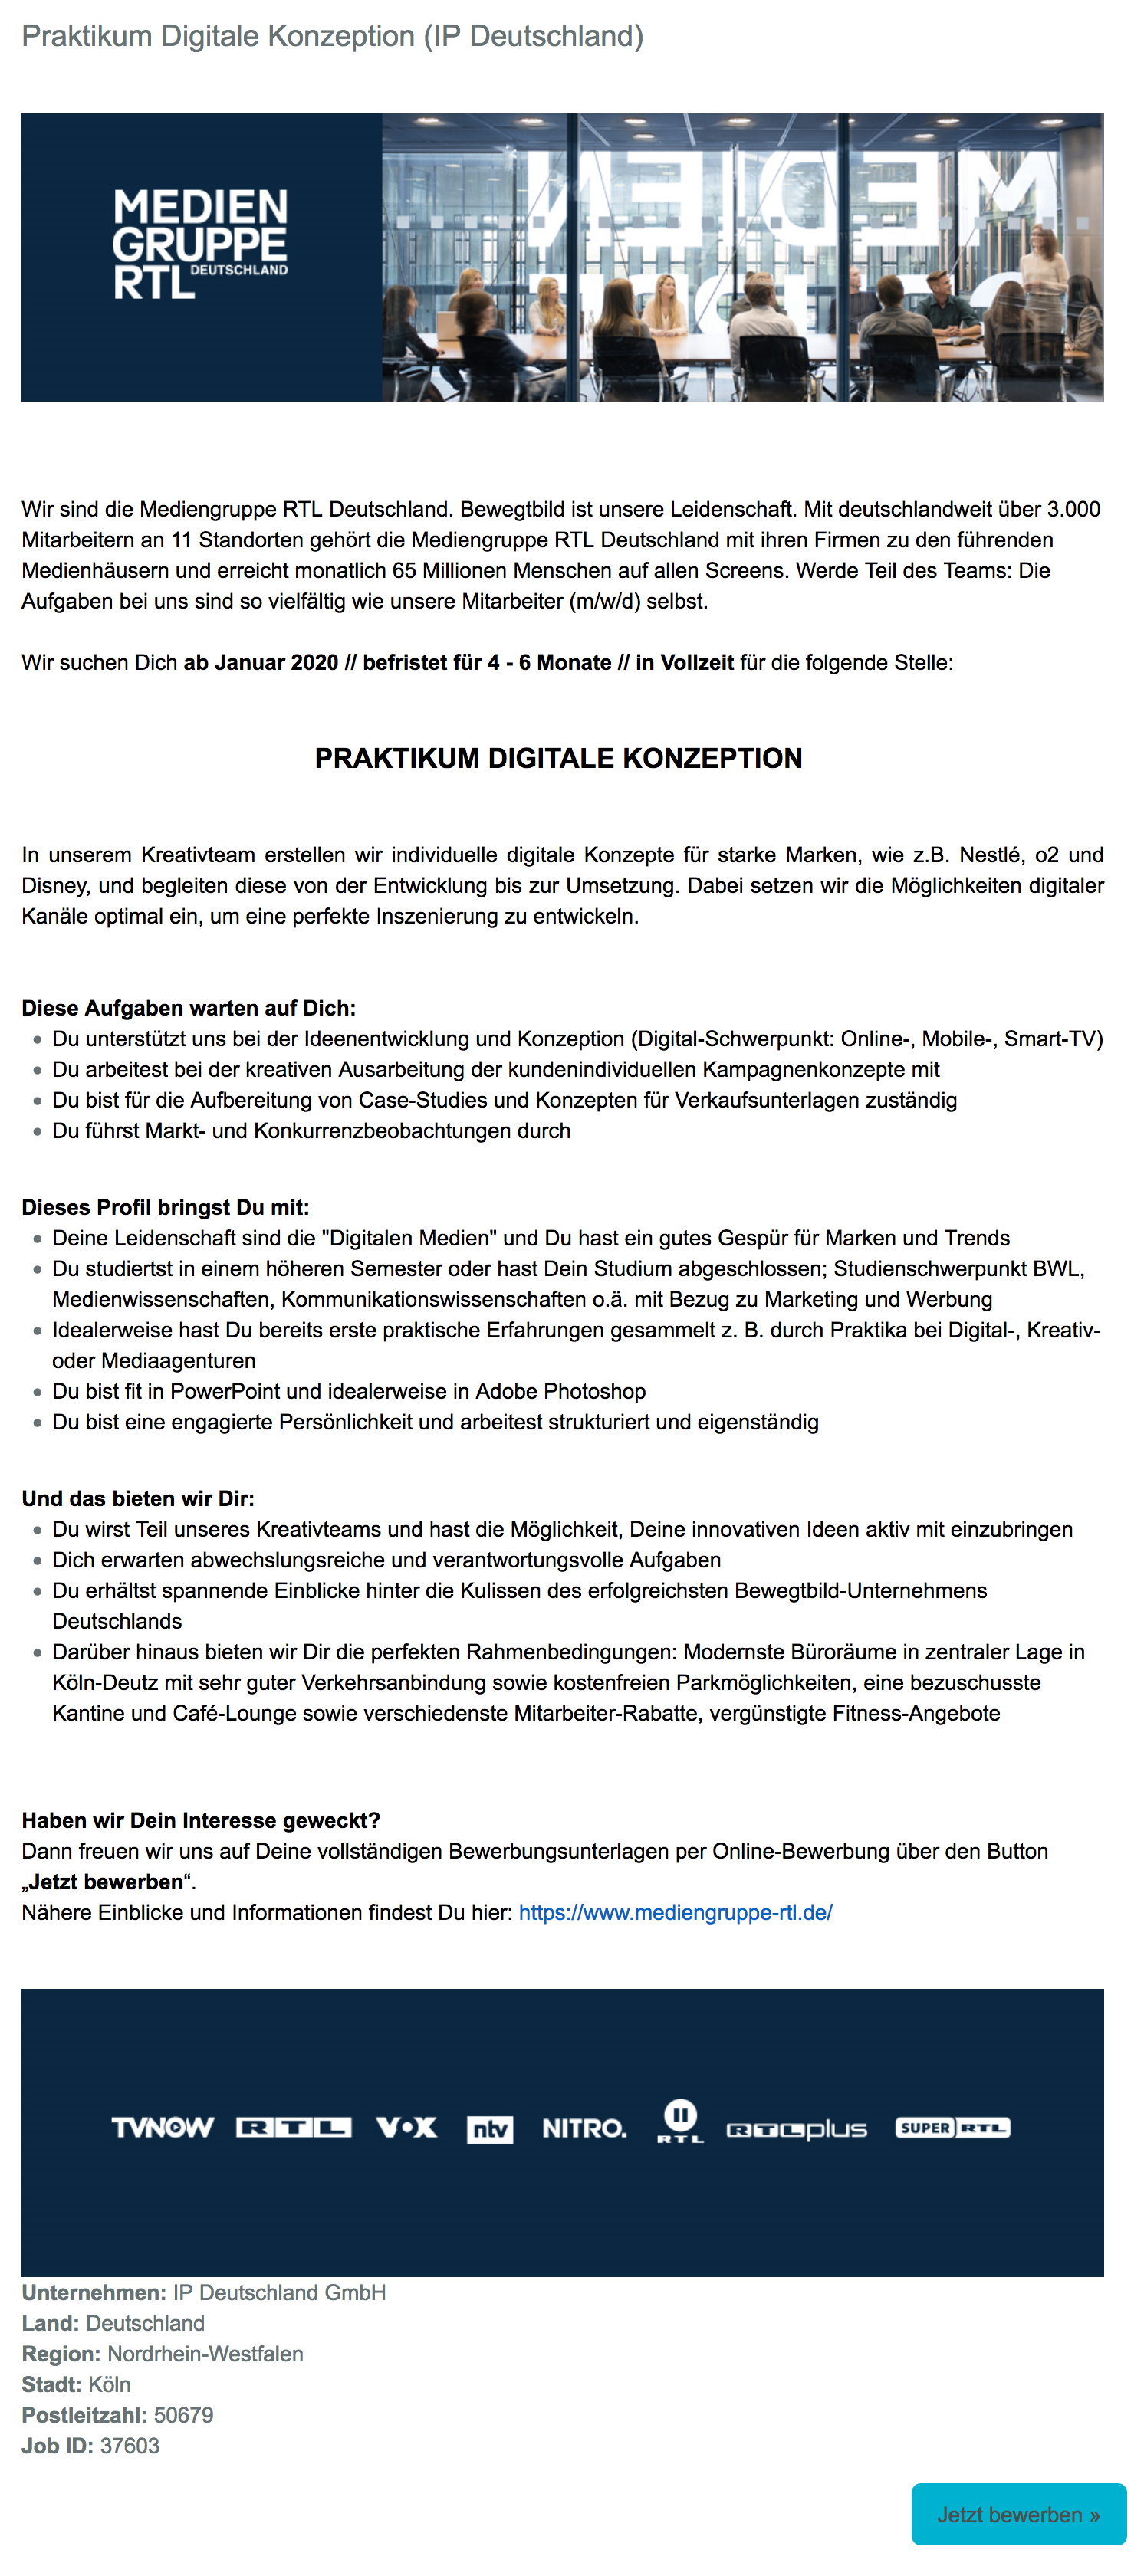 Praktikum Digitale Konzeption (IP Deutschland)